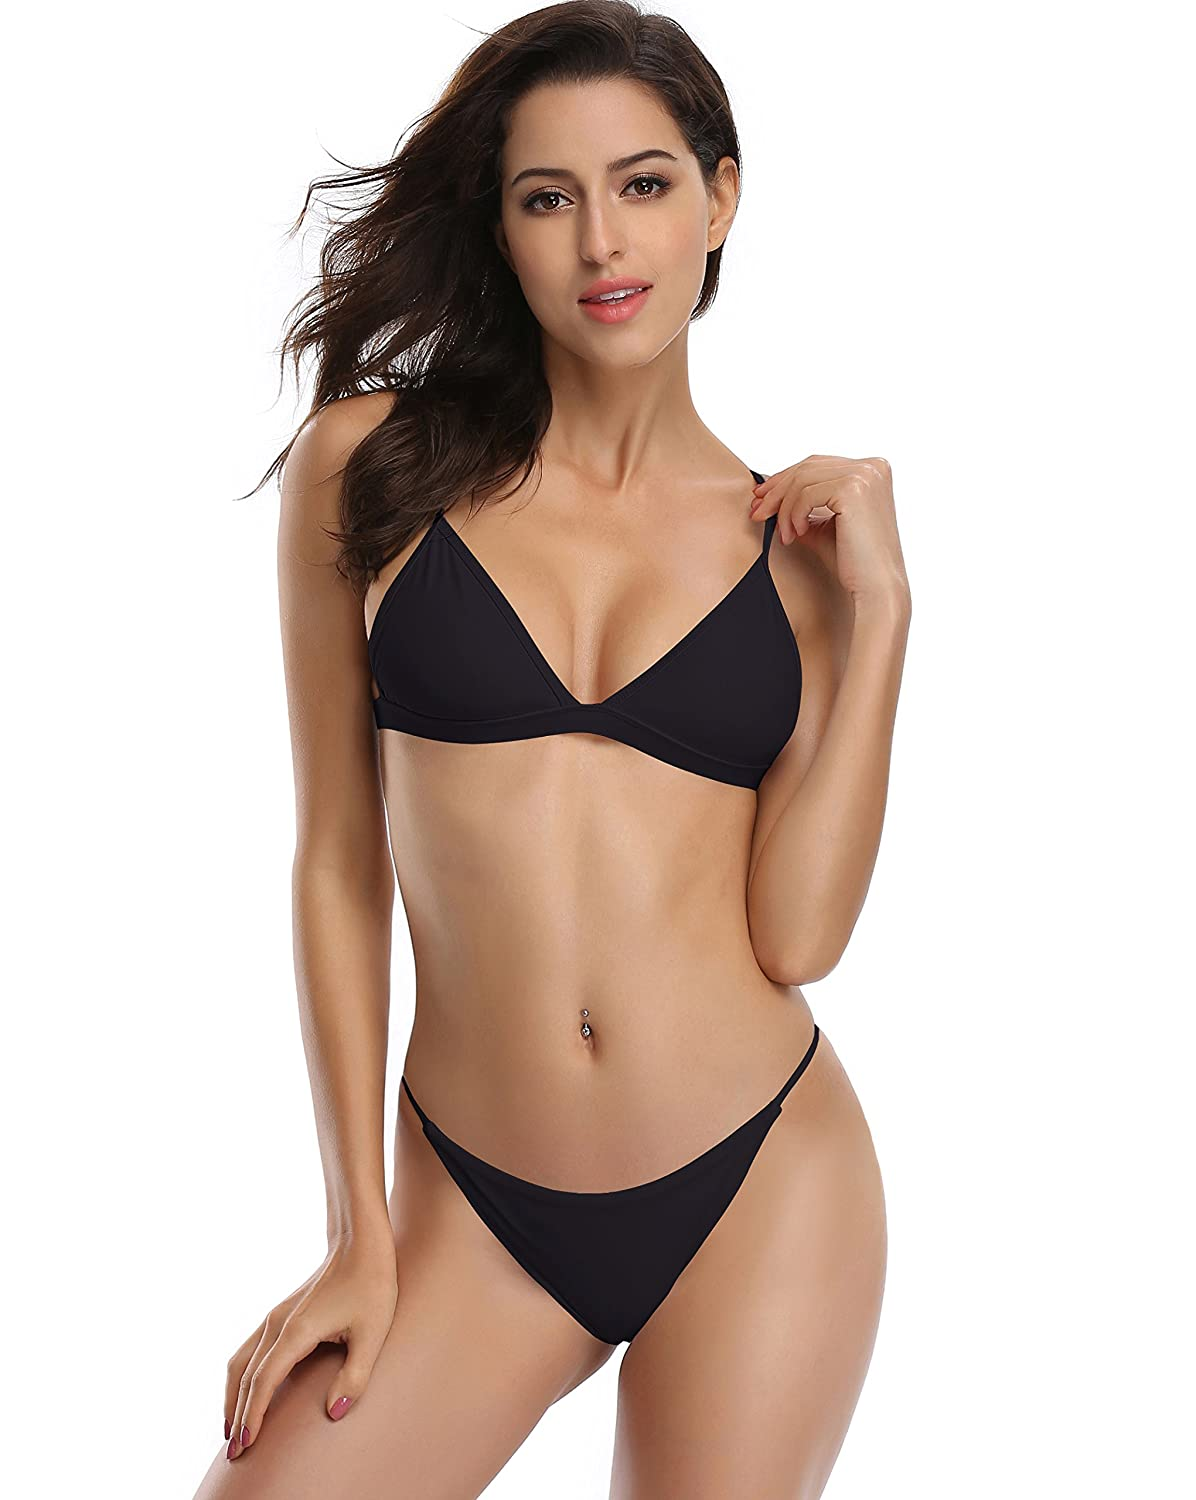 Amazon.com: SHEKINI Women's Triangle Top Brazilian Bottom Two Piece Bikini  Swimsuit Set: Clothing